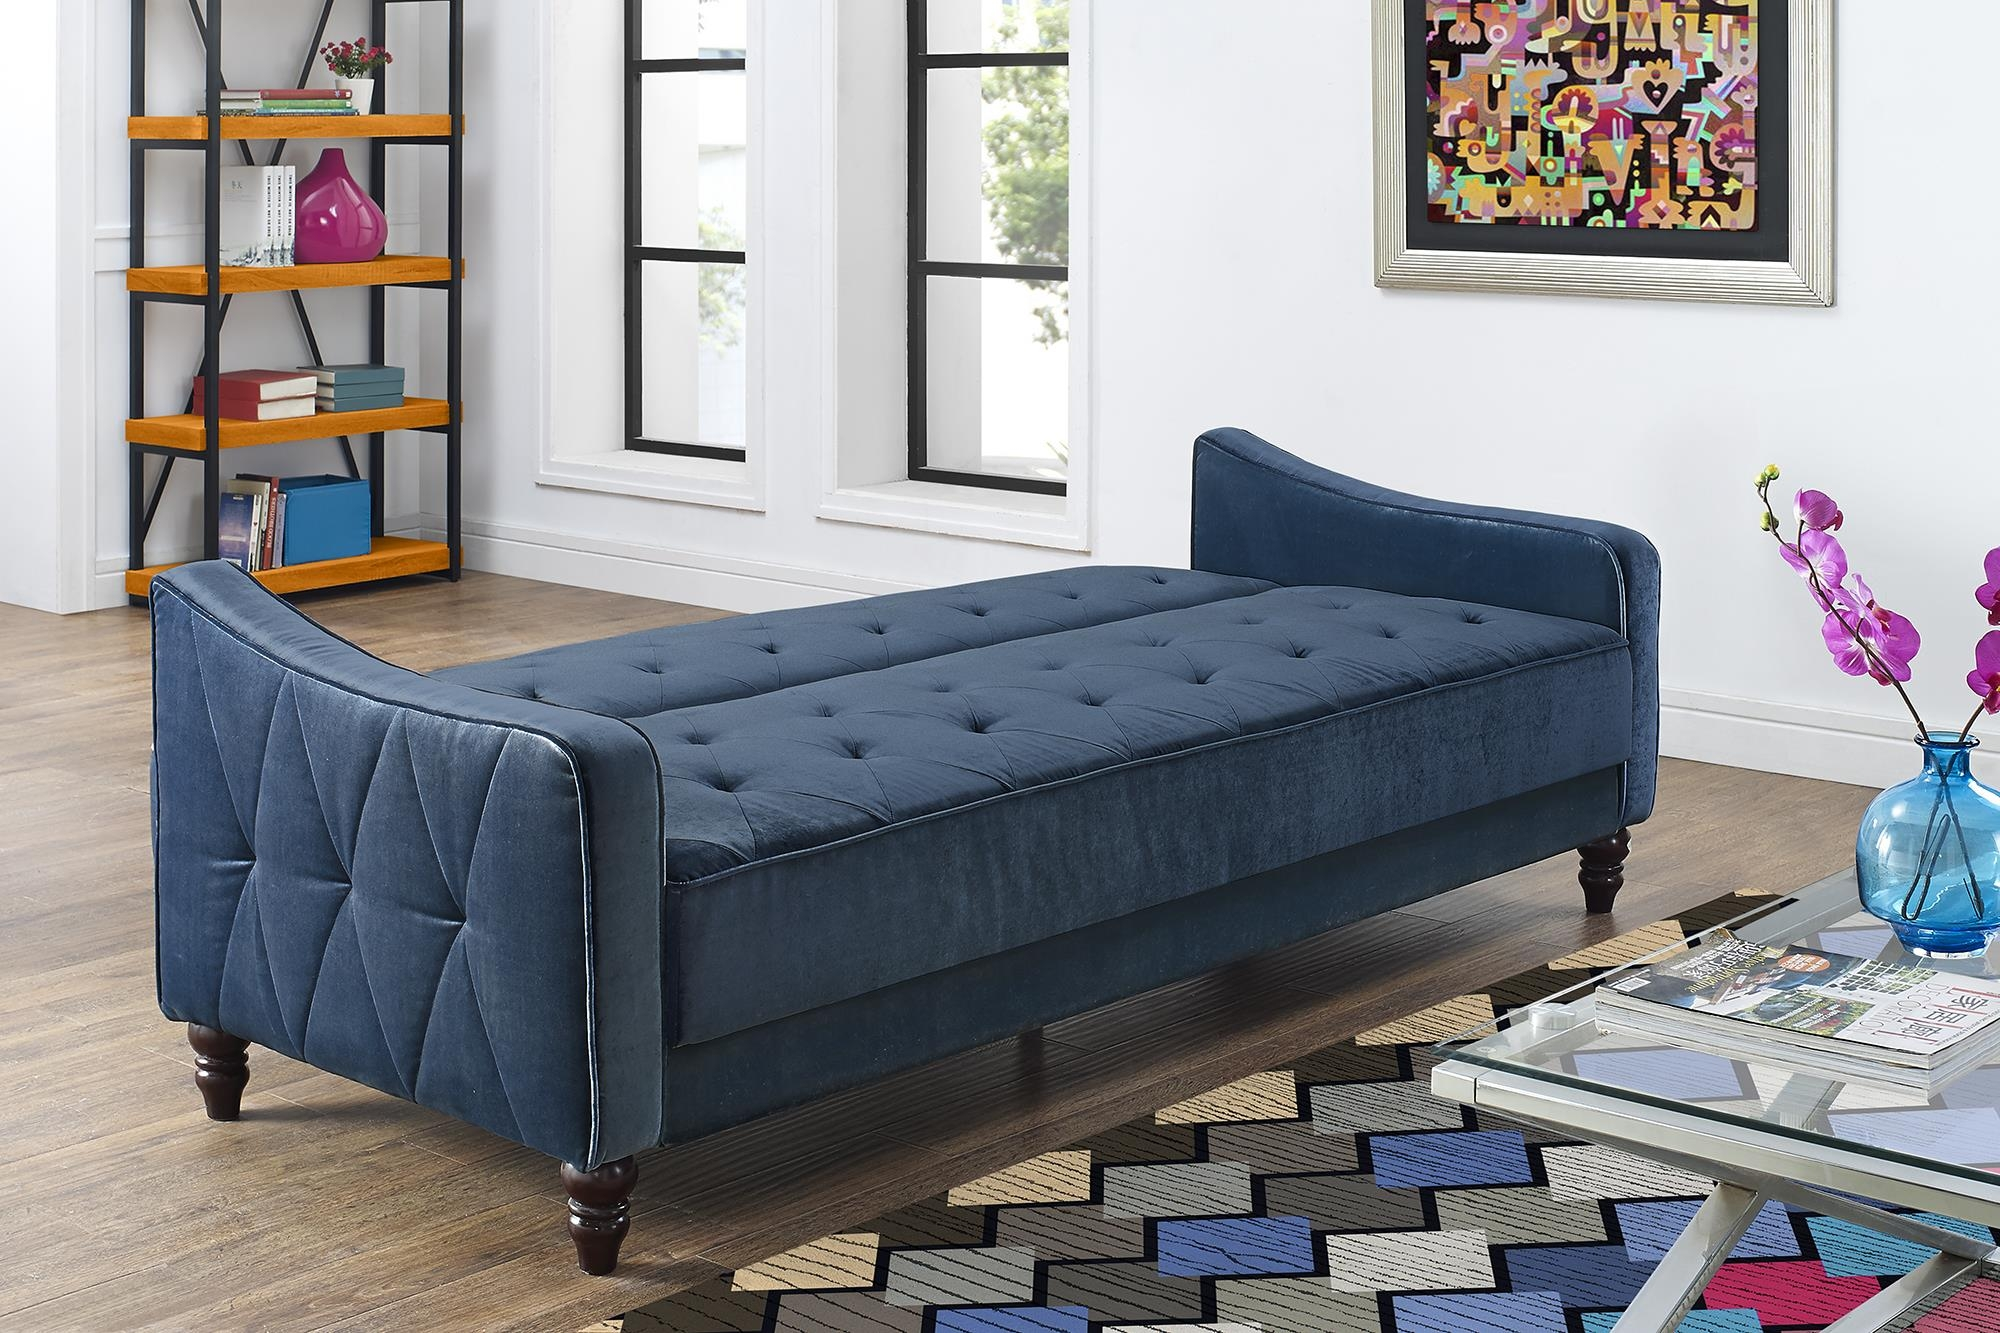 Furniture Couches At Walmart To Keep Your Living Room Stylish And With Regard To Affordable Tufted Sofa (View 15 of 15)